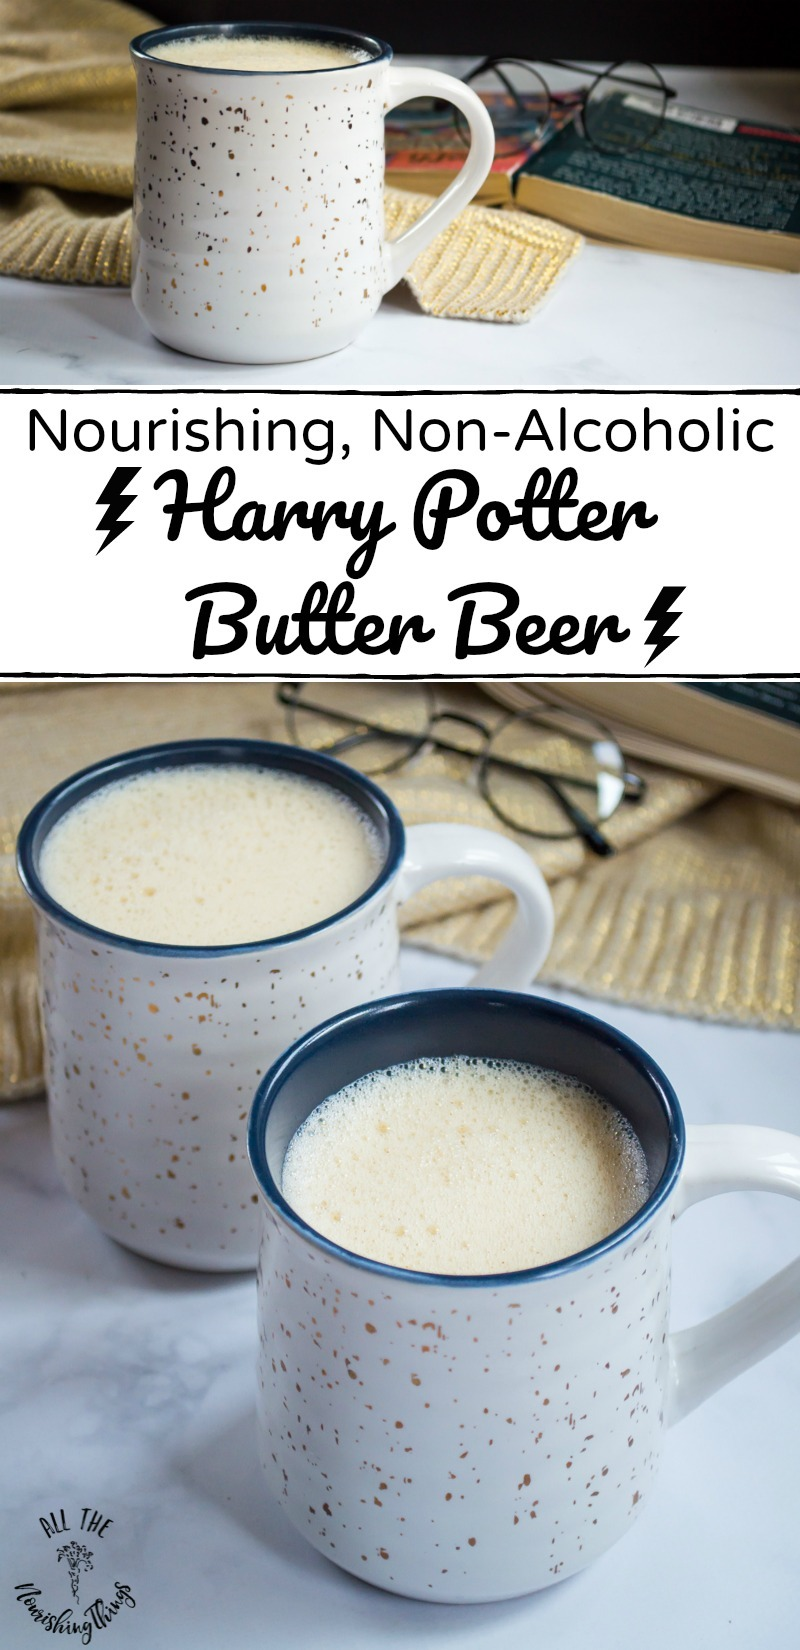 2 white mugs of nourishing harry potter butter beer with text overlay